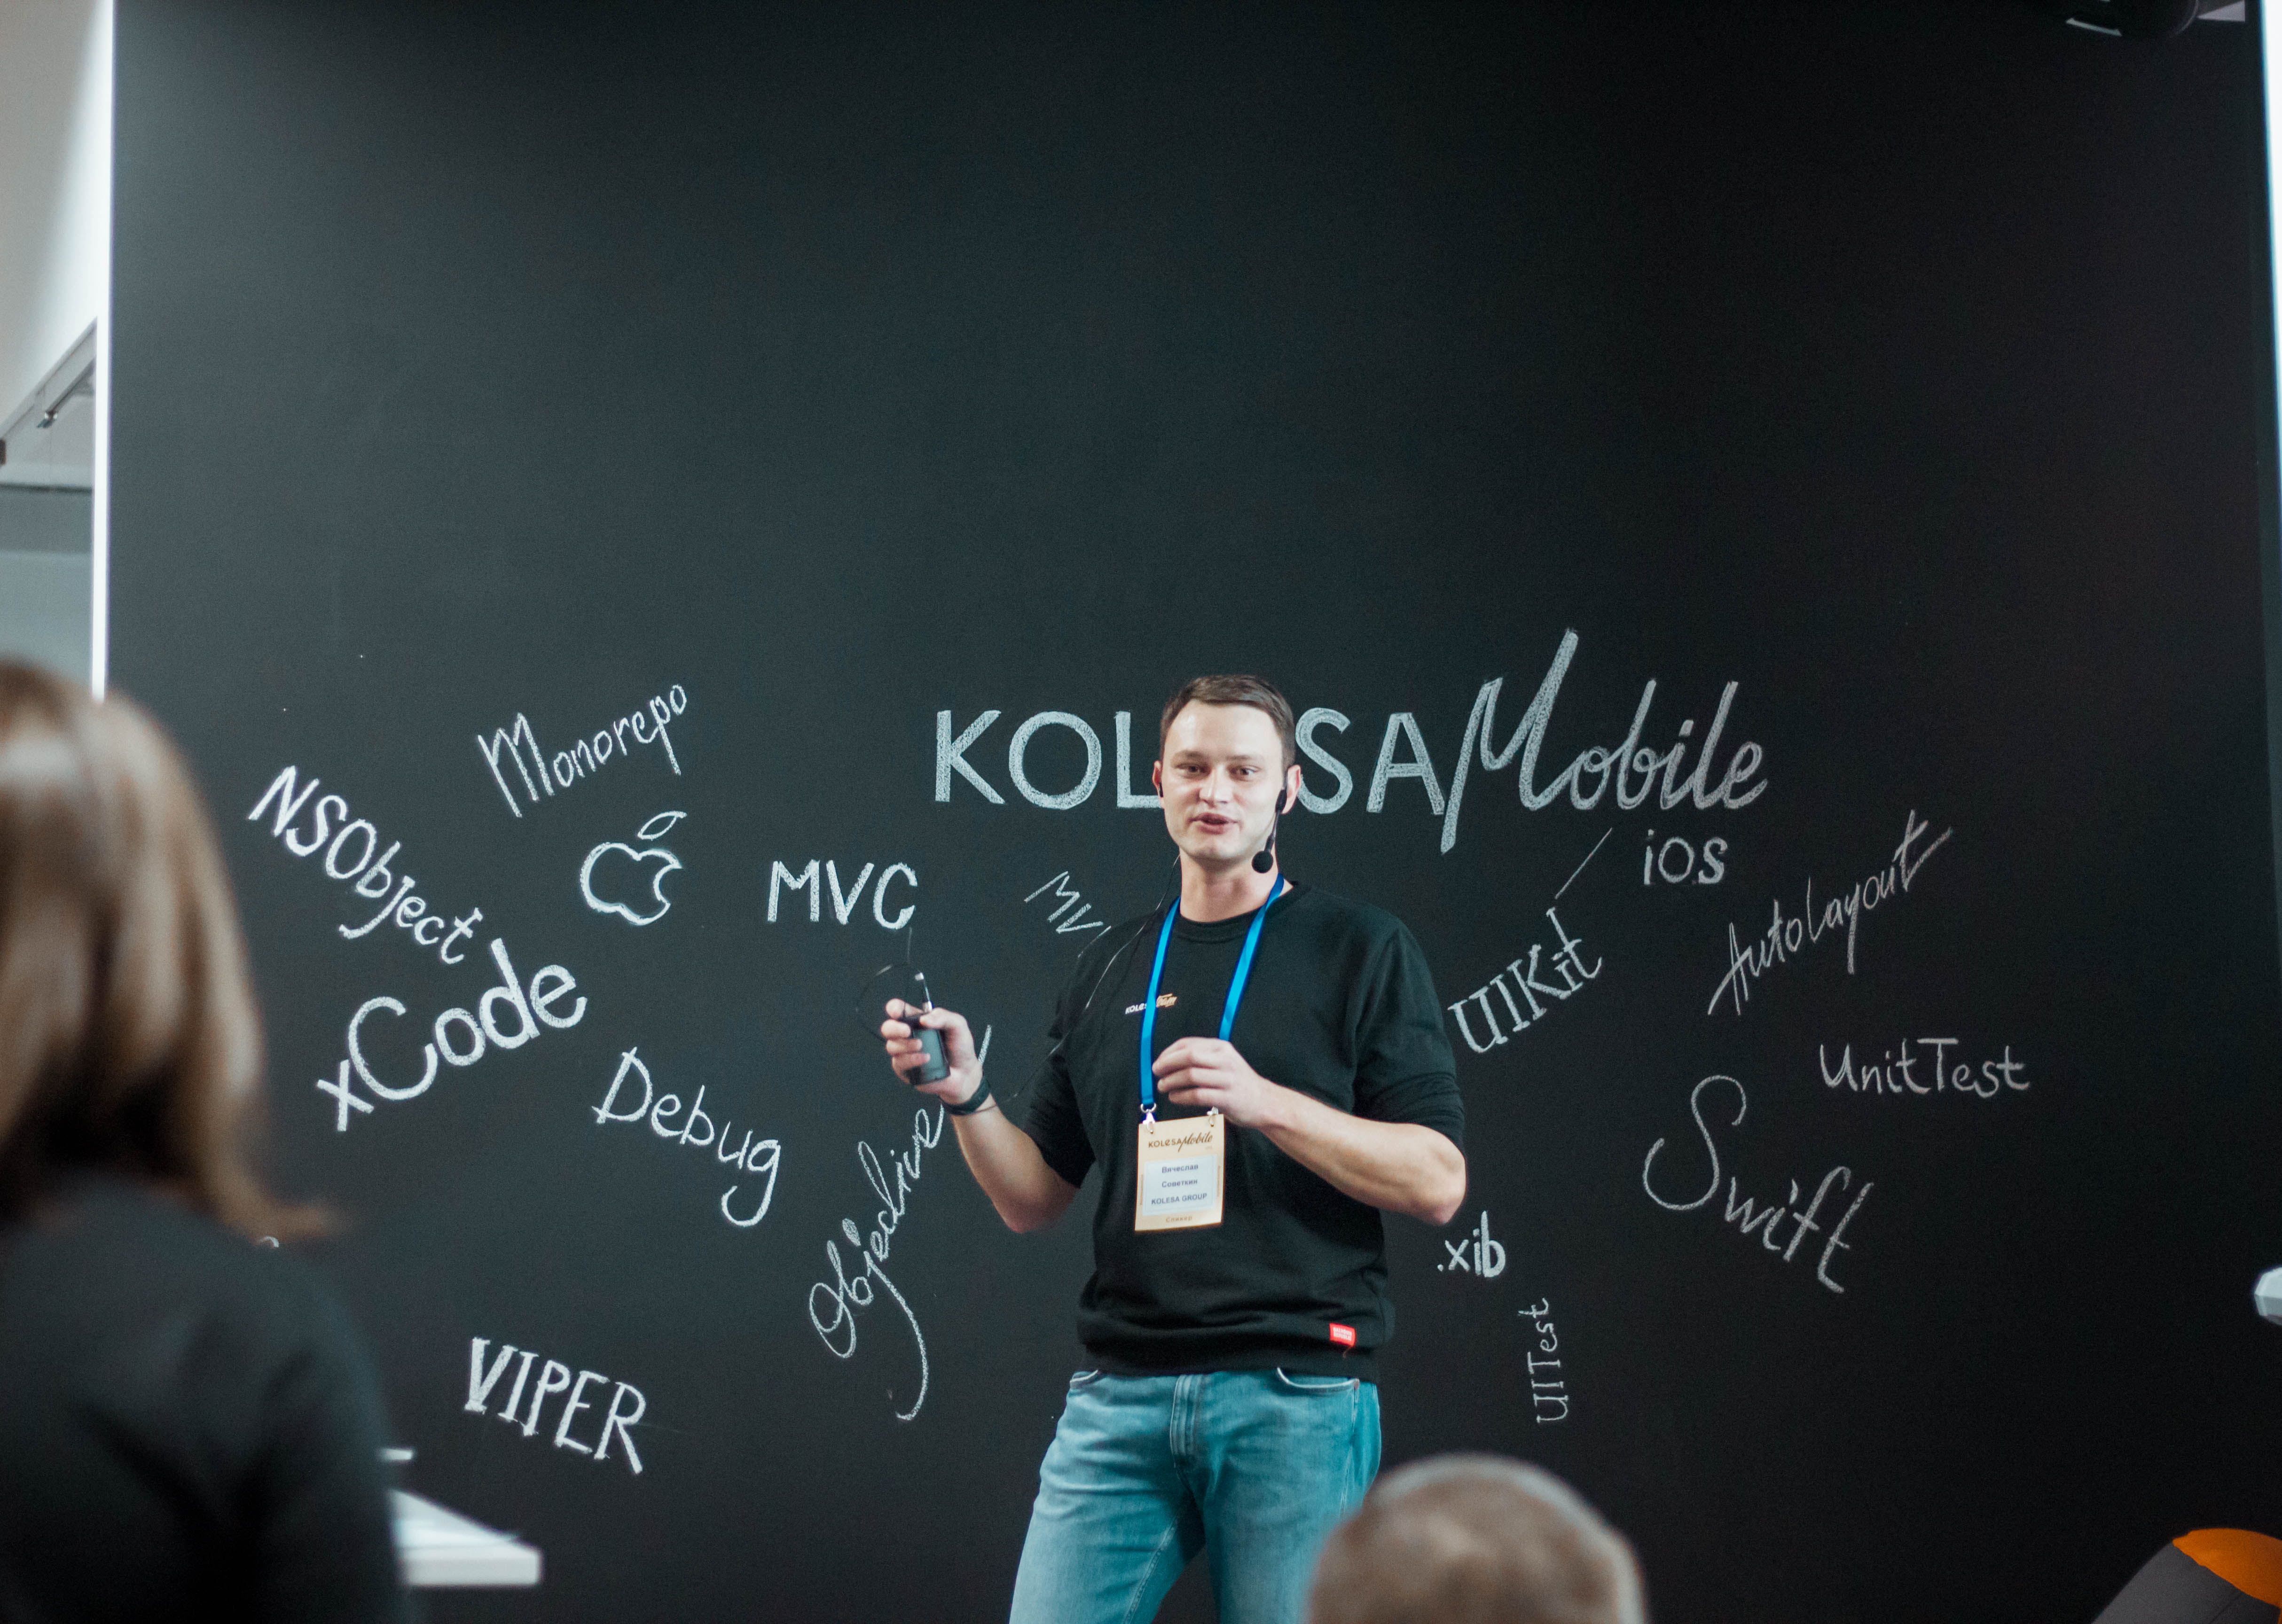 IOS Kolesa Mobile video: about Backend Driven UI, Avito Mobile, iOS application security and other